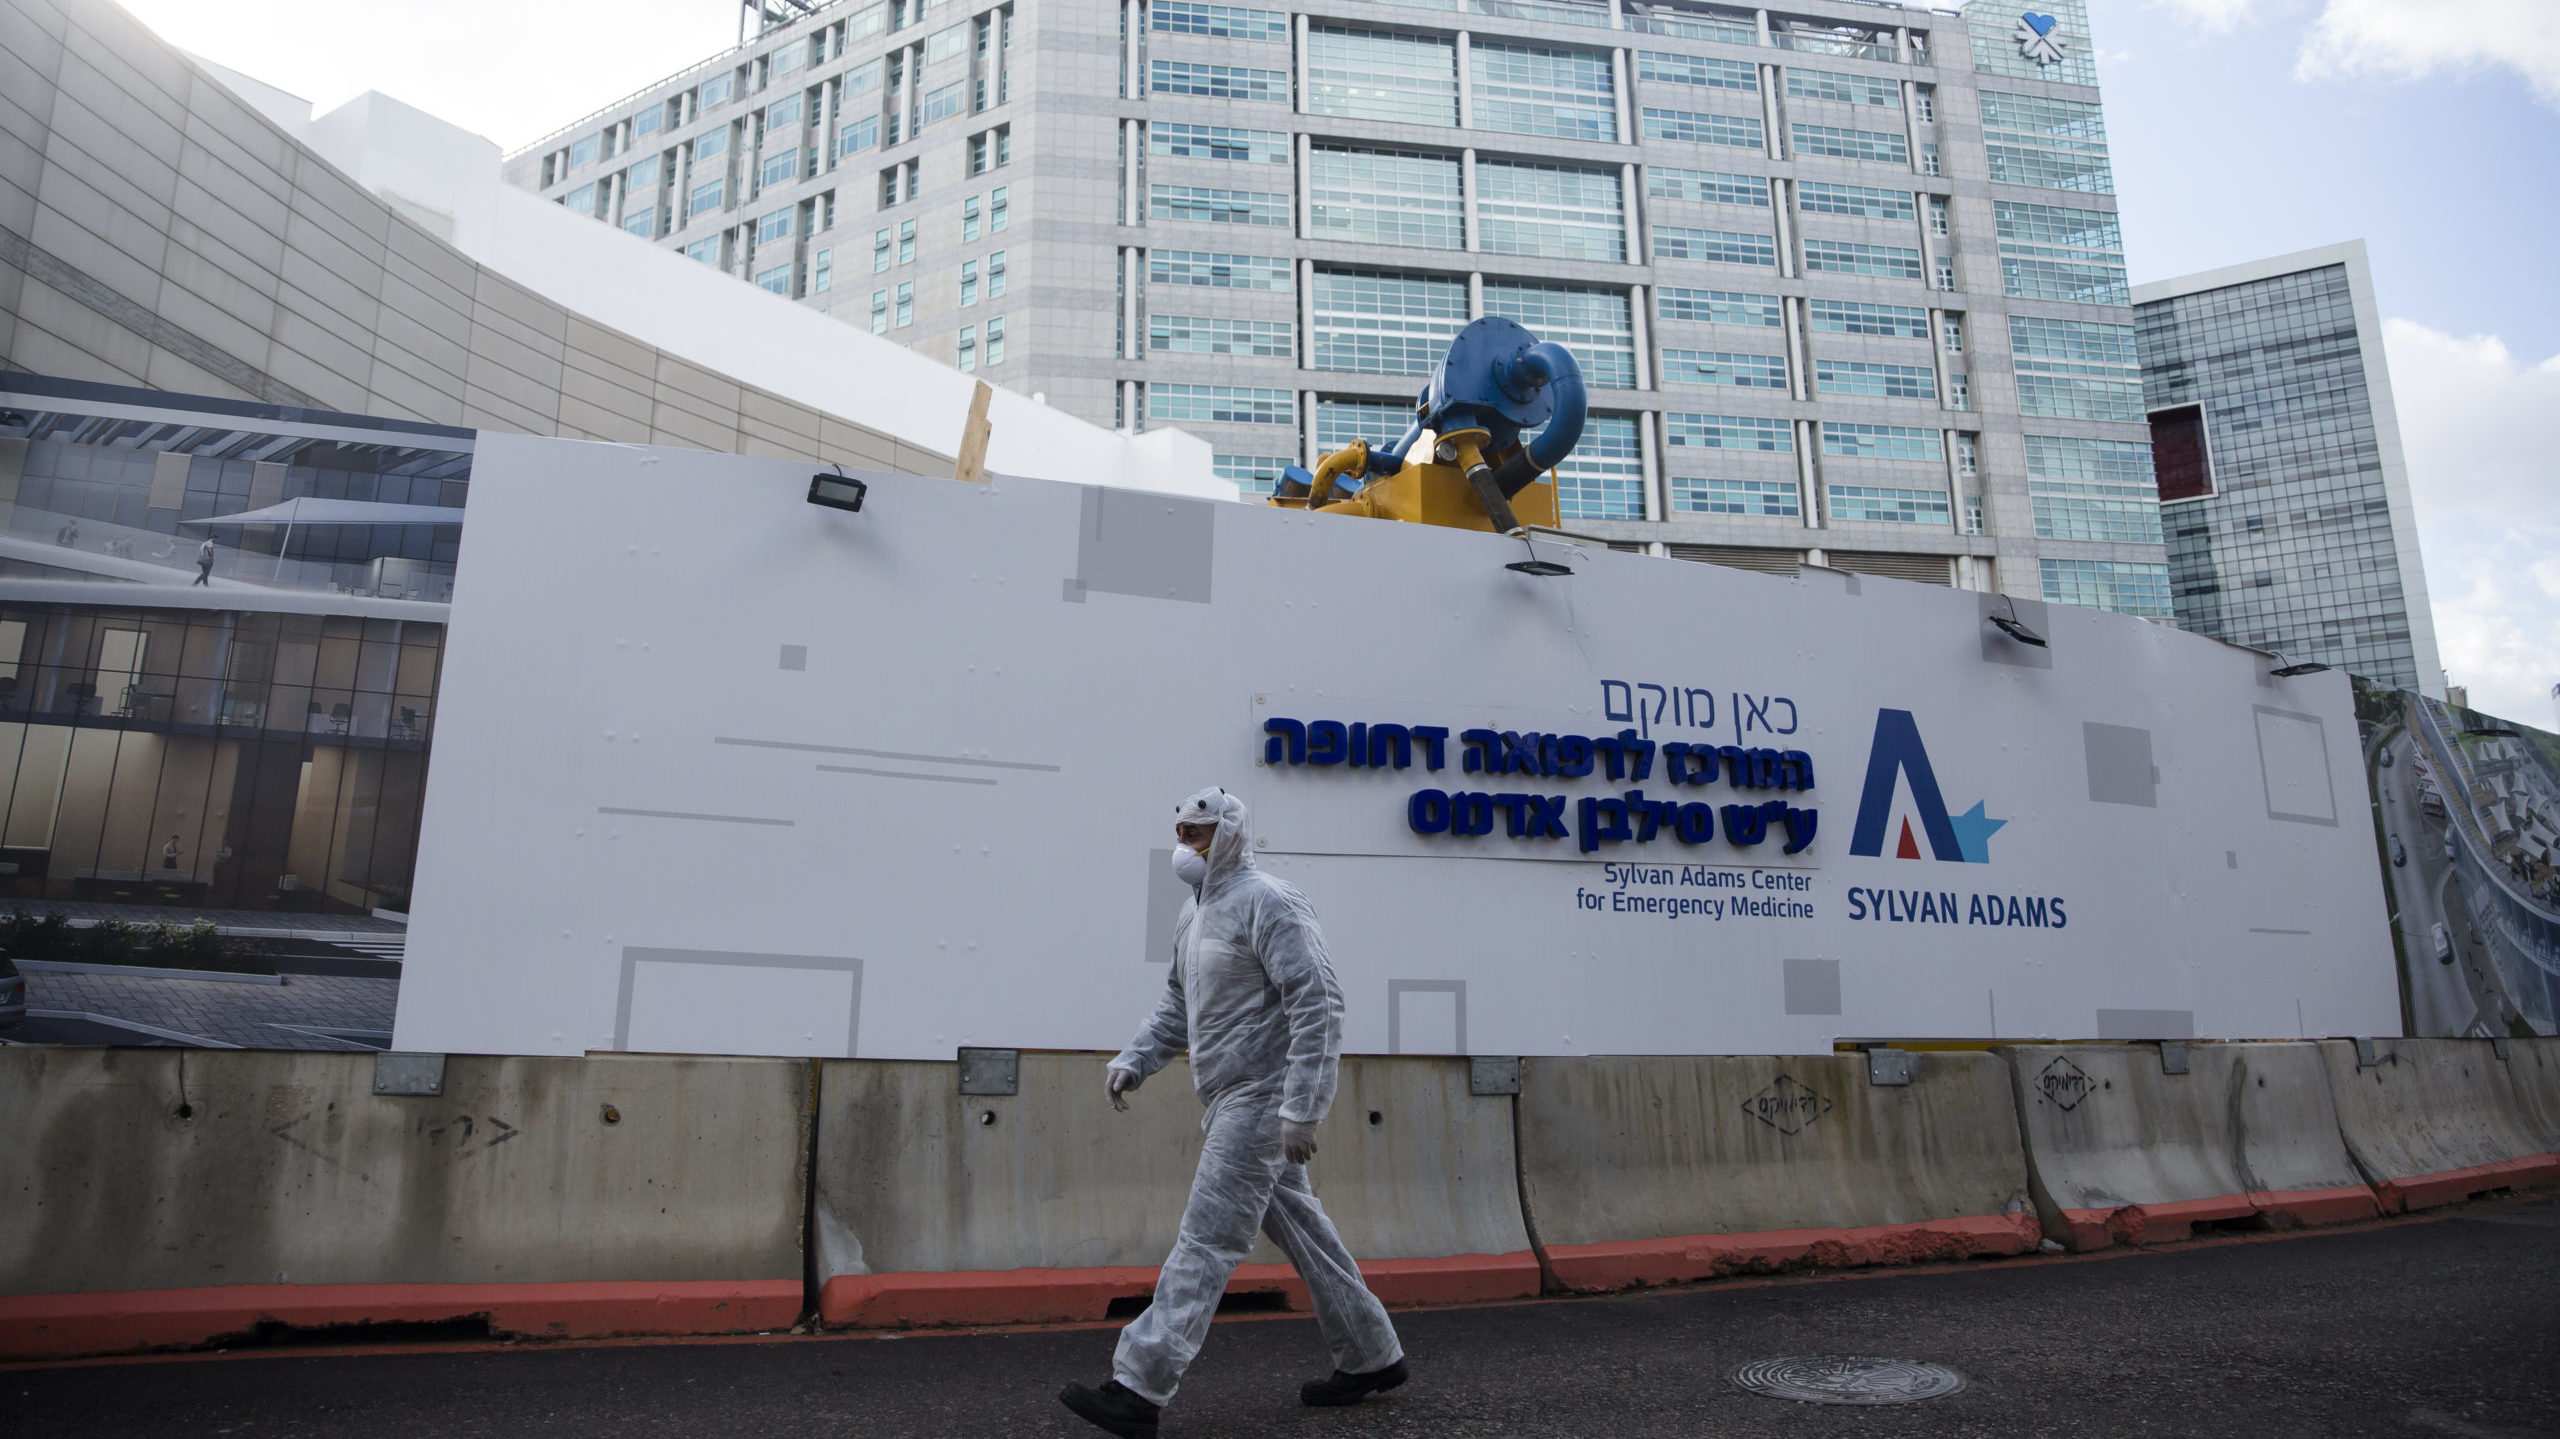 Israeli Hospitals Told to Get Ready for COVID-19 Peak (with VIDEO REPORT)